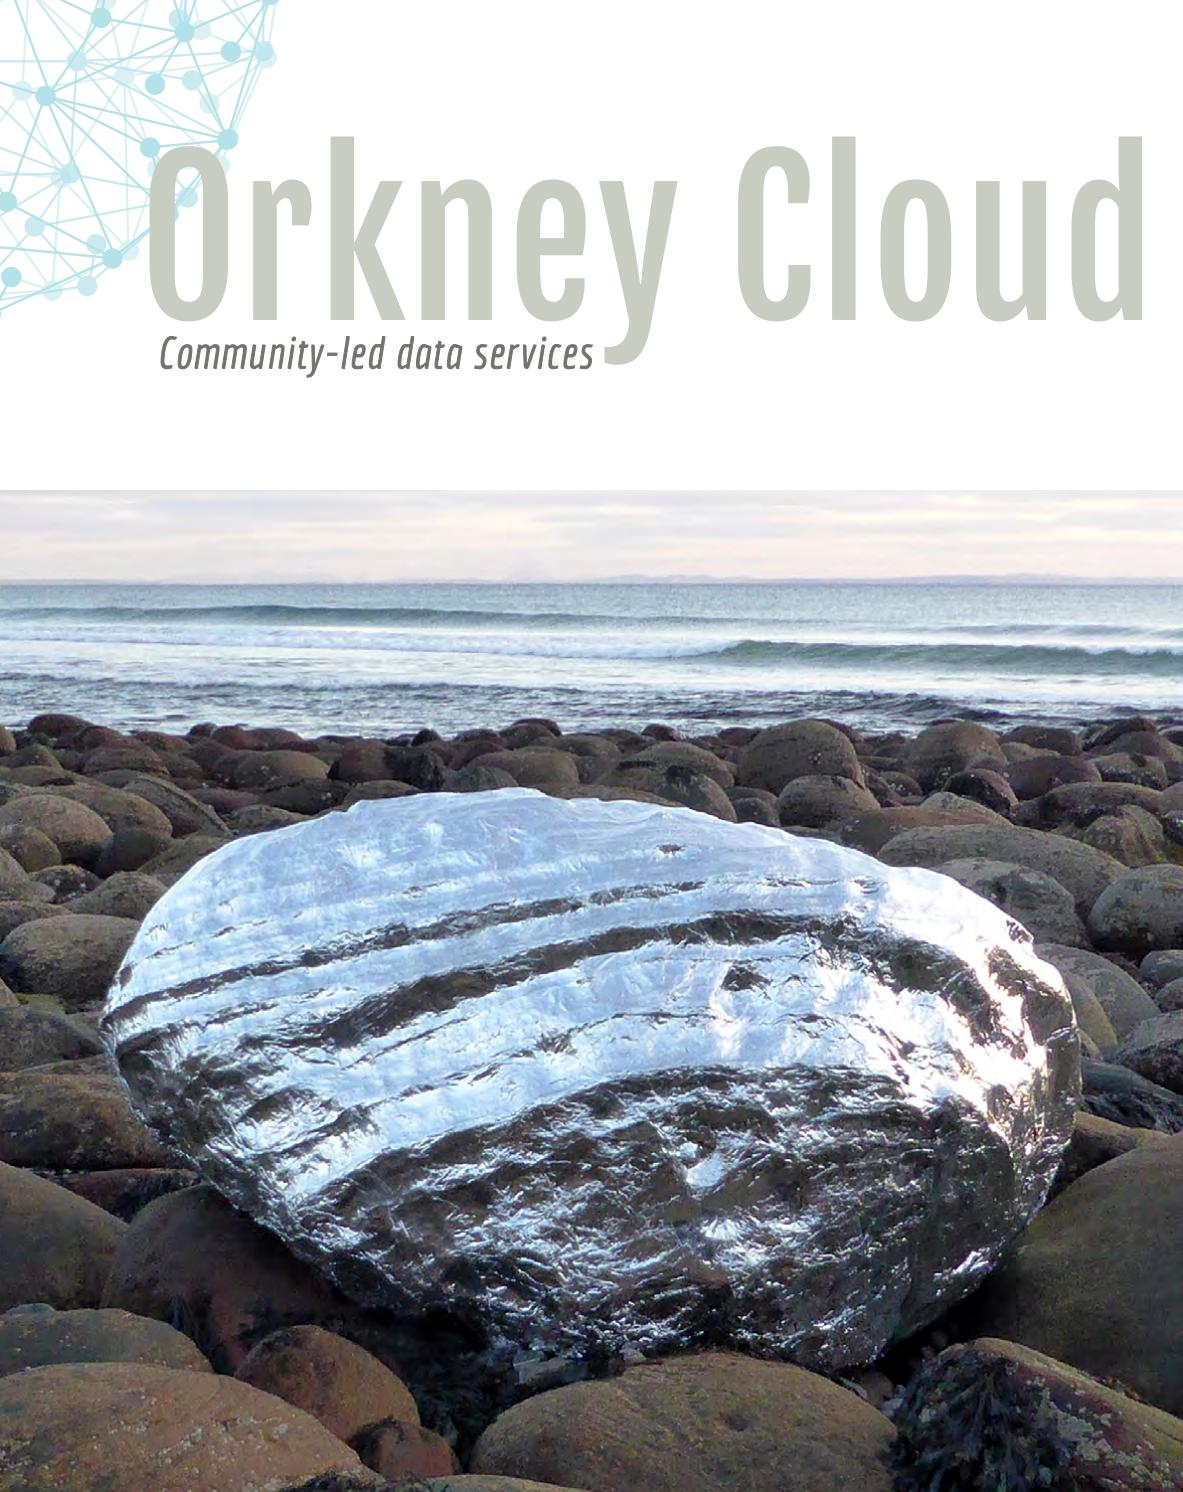 Sofas And Stuff Ronaldsay Orkney Cloud Magazine By Laura Watts Issuu